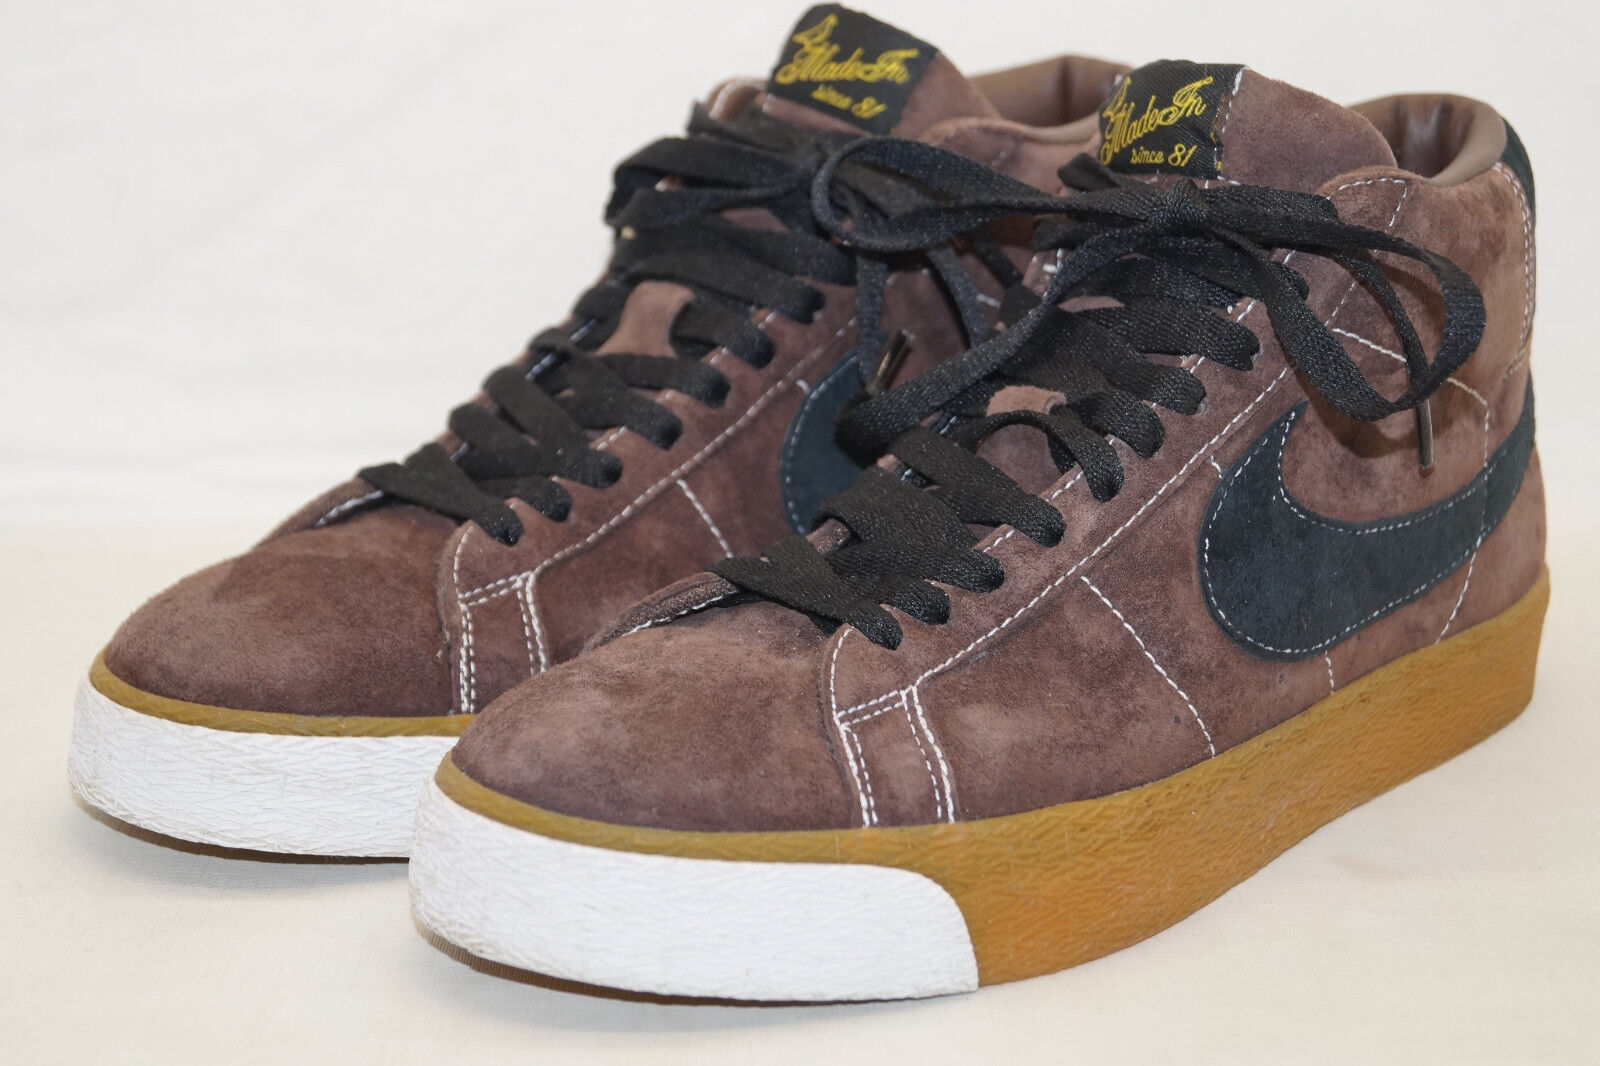 NIKE Blazer suede  Made ni  COLOGNE COLONIA 2005 tg. 42,5 uk.8 sample 310801-201